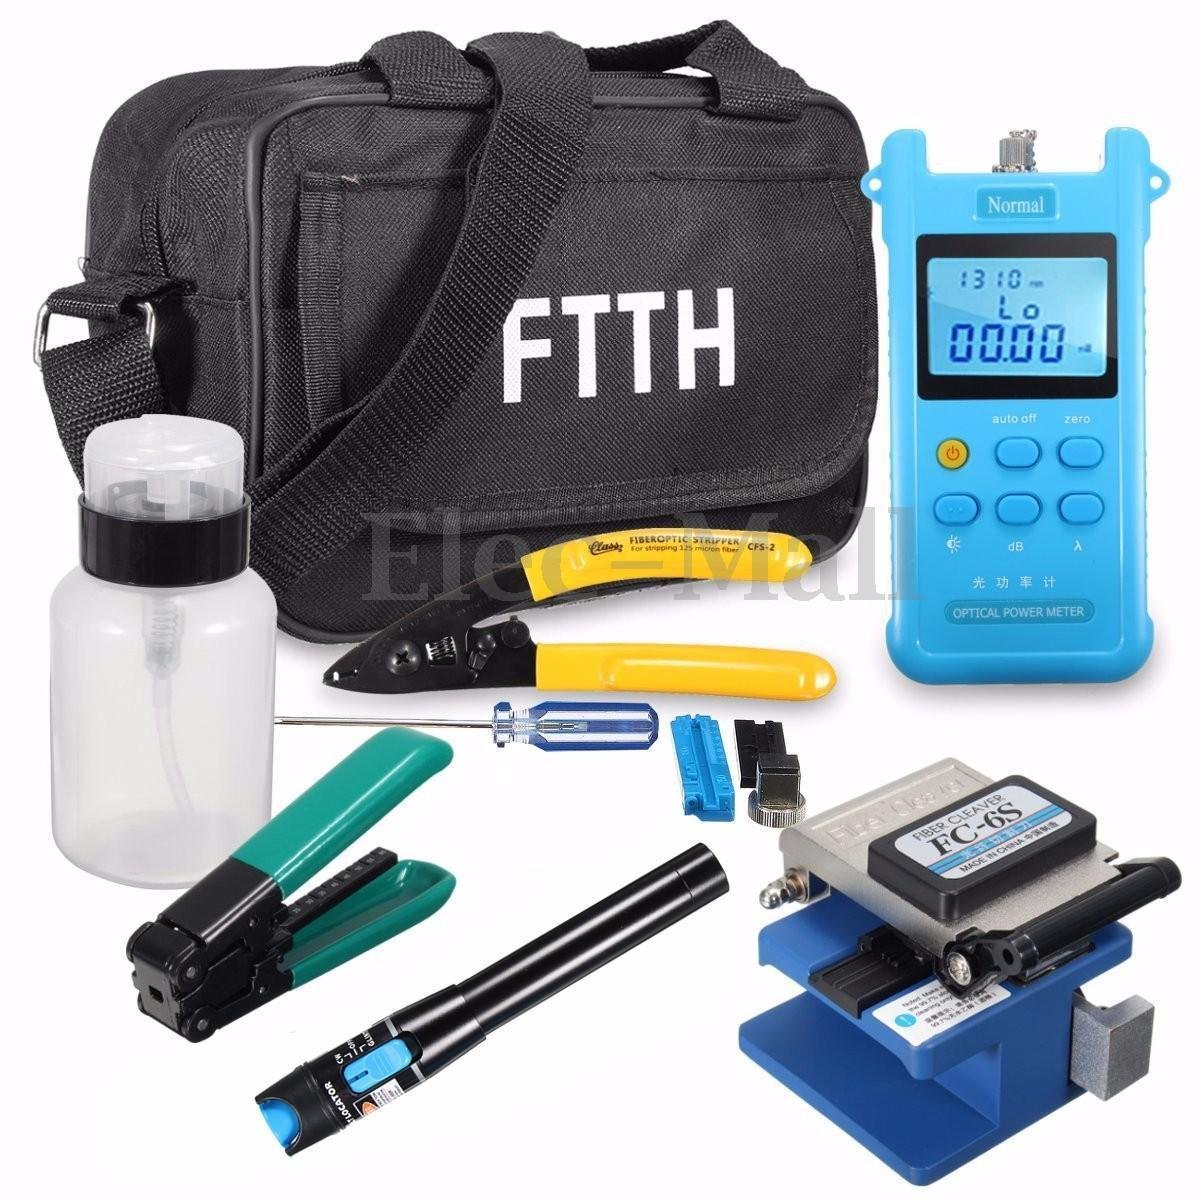 Fiber Optic FTTH Tool Kit FC-6S Fiber Cleaver Power Meter Visual Finder Locator by Unknown